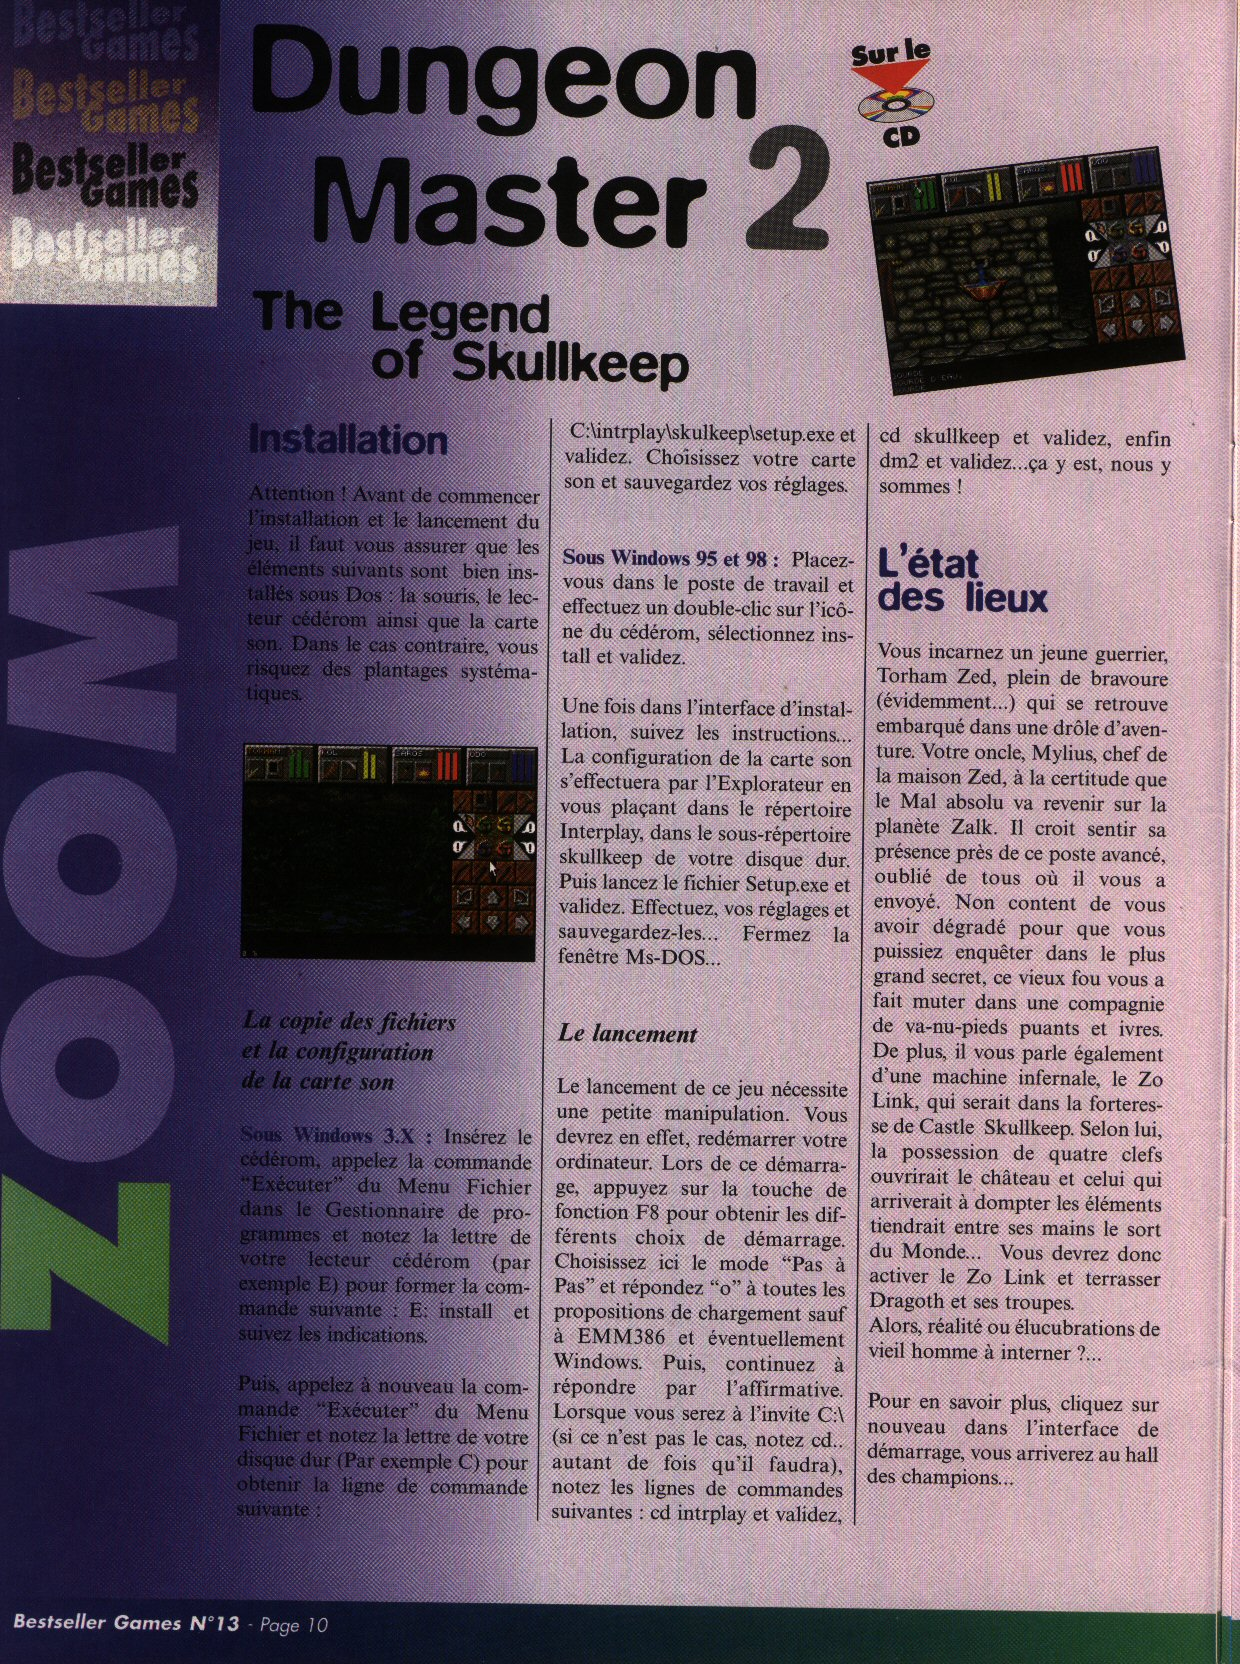 Dungeon Master II for PC (French) - CD version from French magazine 'Best Seller Games' Issue #13, September 1998 - Page 10